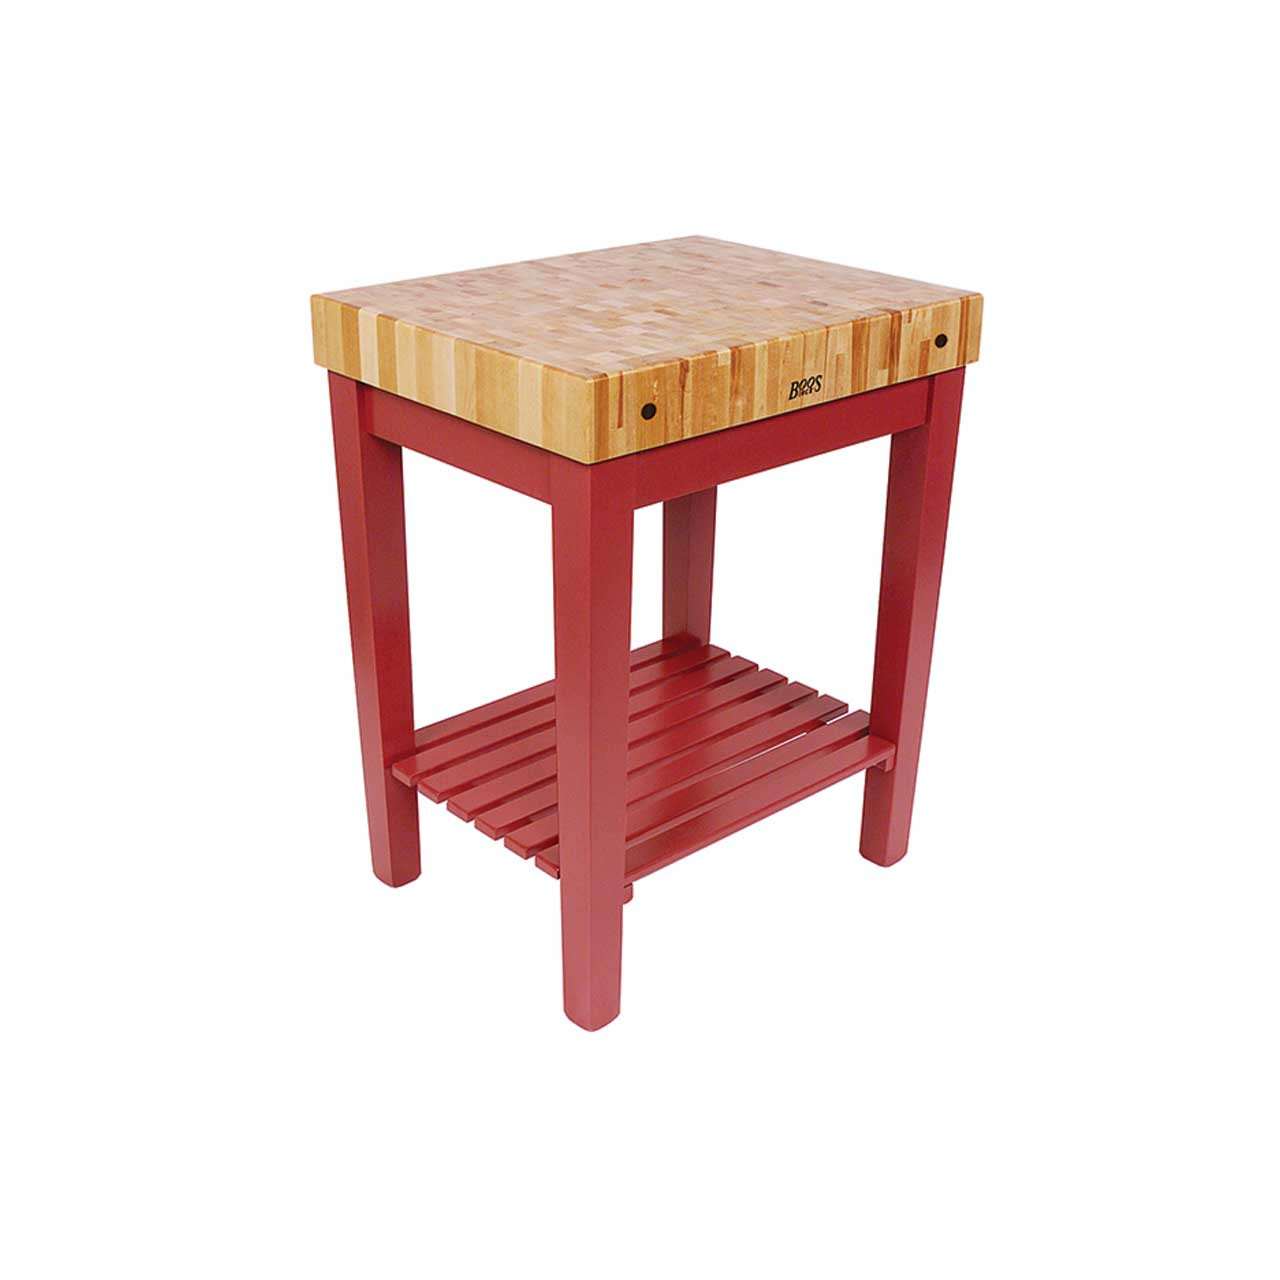 Chefs Block 30 Quot X24 Quot X4 Quot Barn Red Base With Shelf John